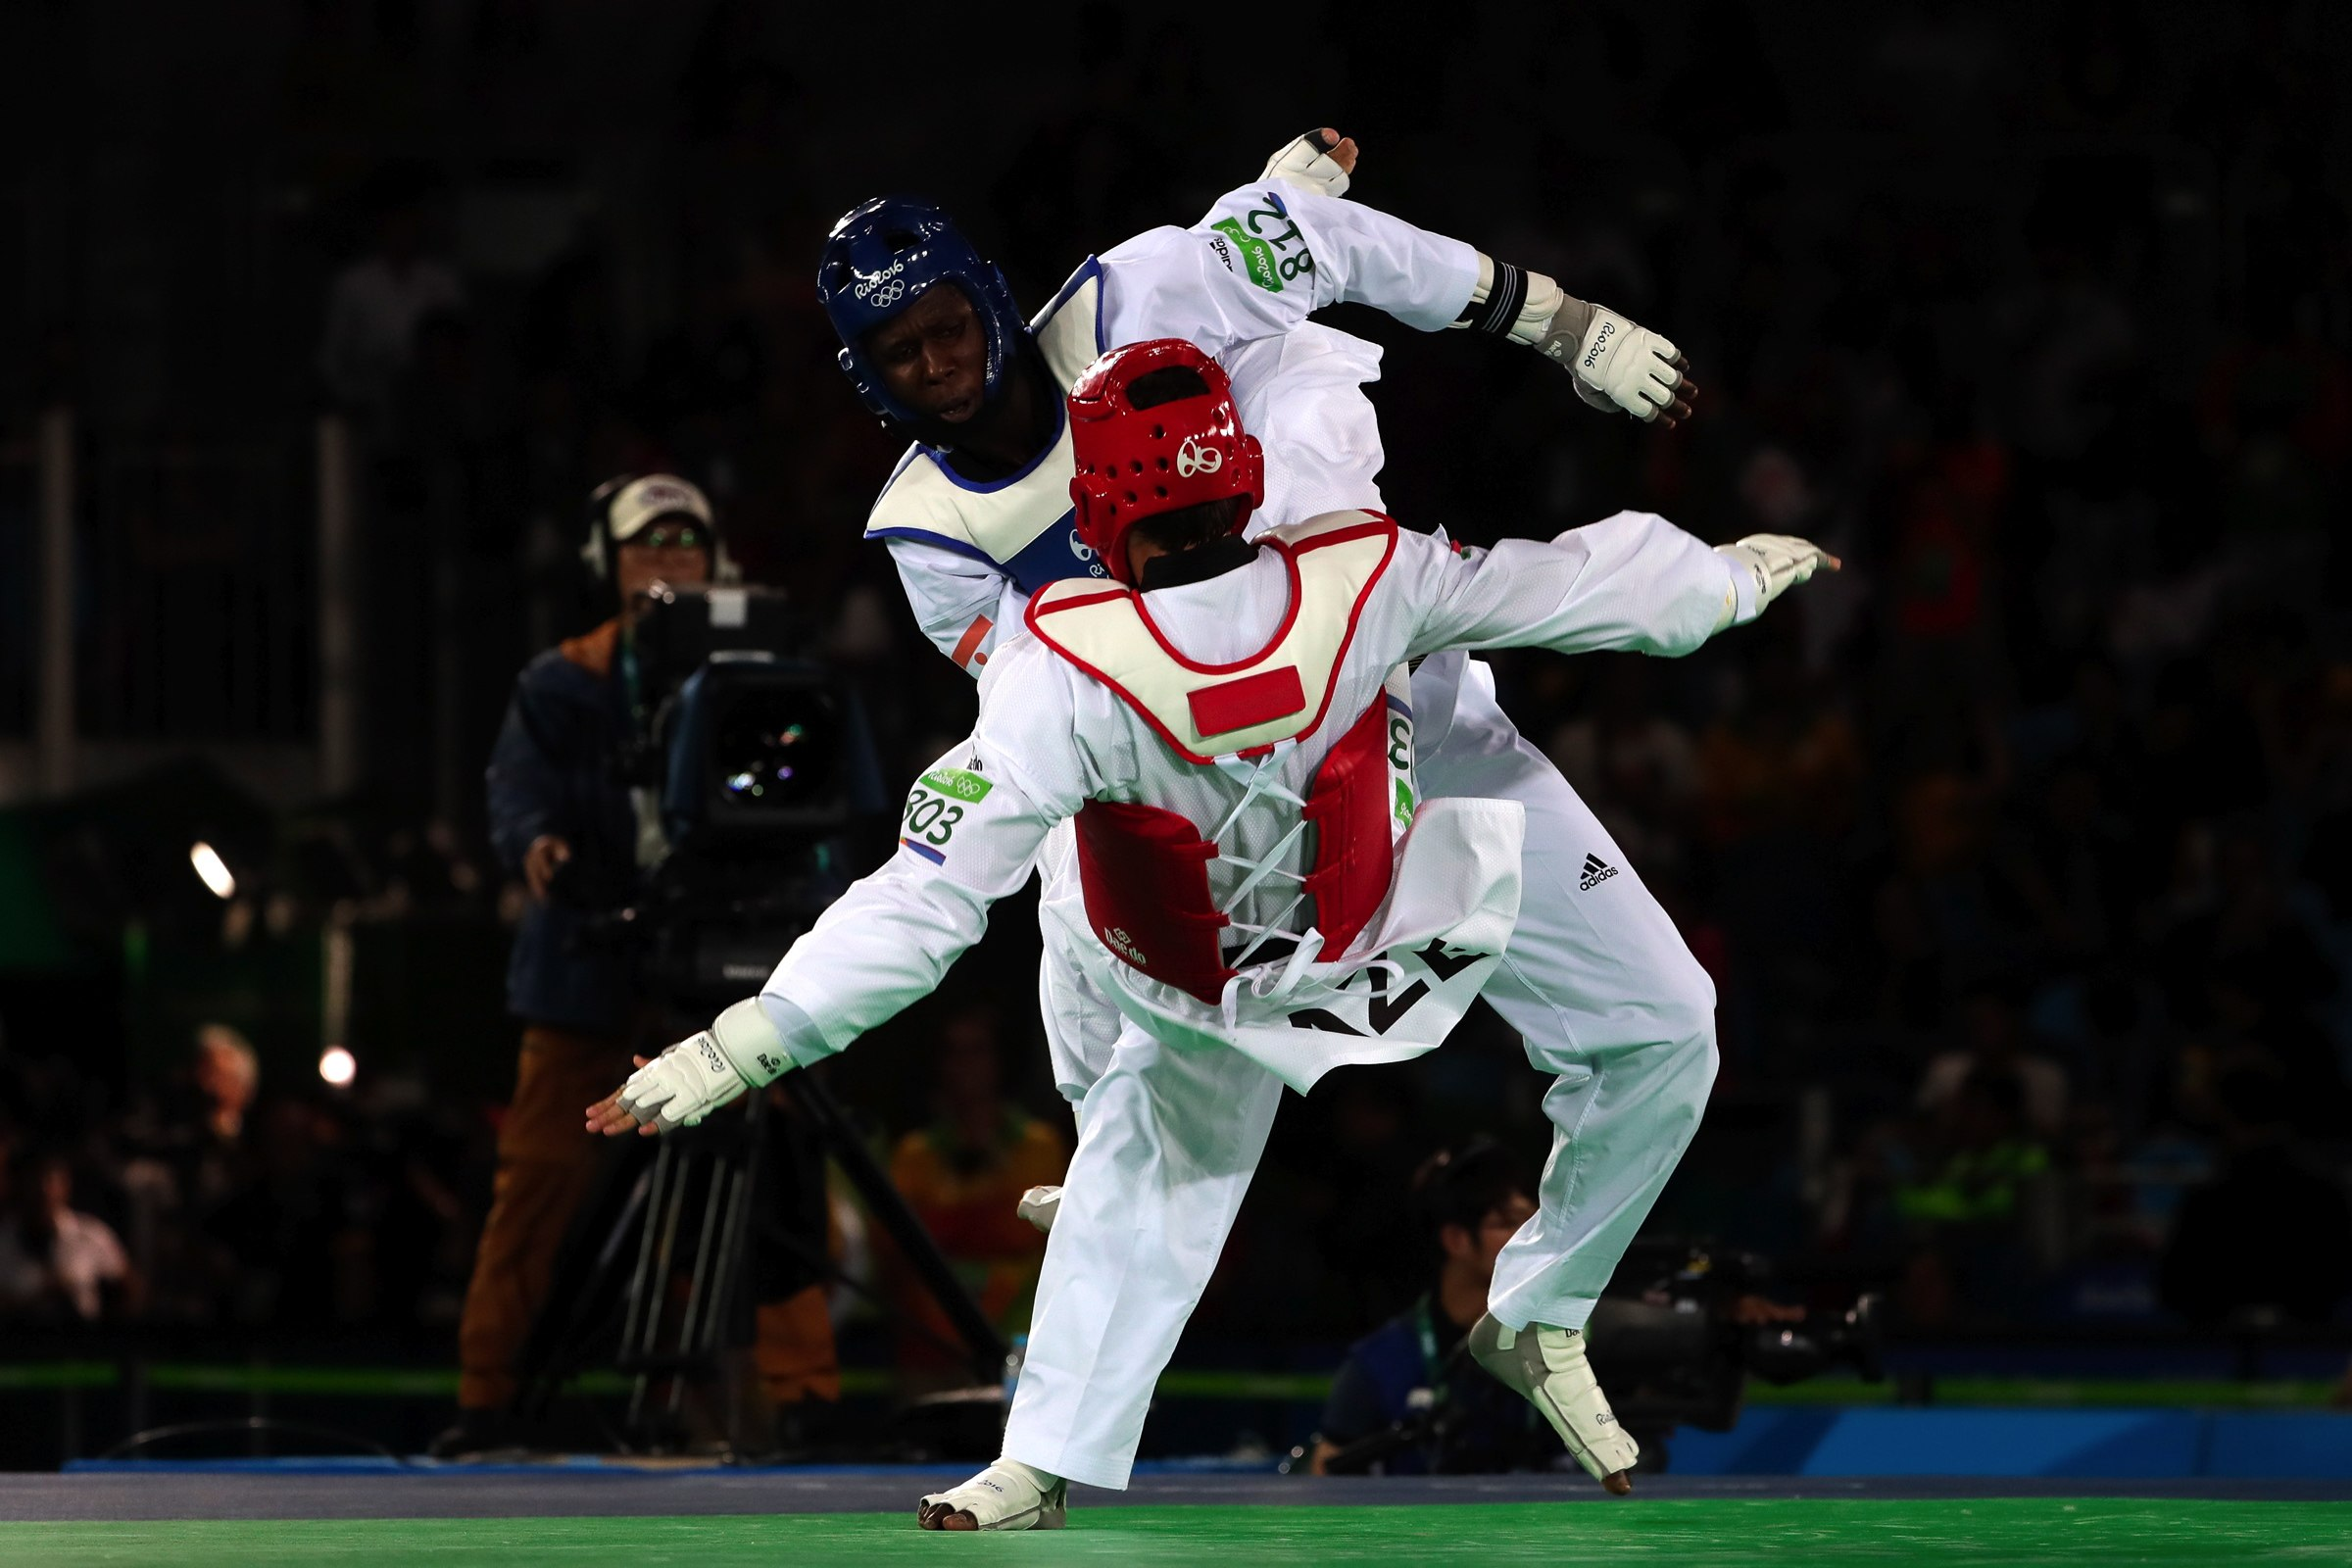 wow taekwondo in waxhaw to host olympic silver medalist on